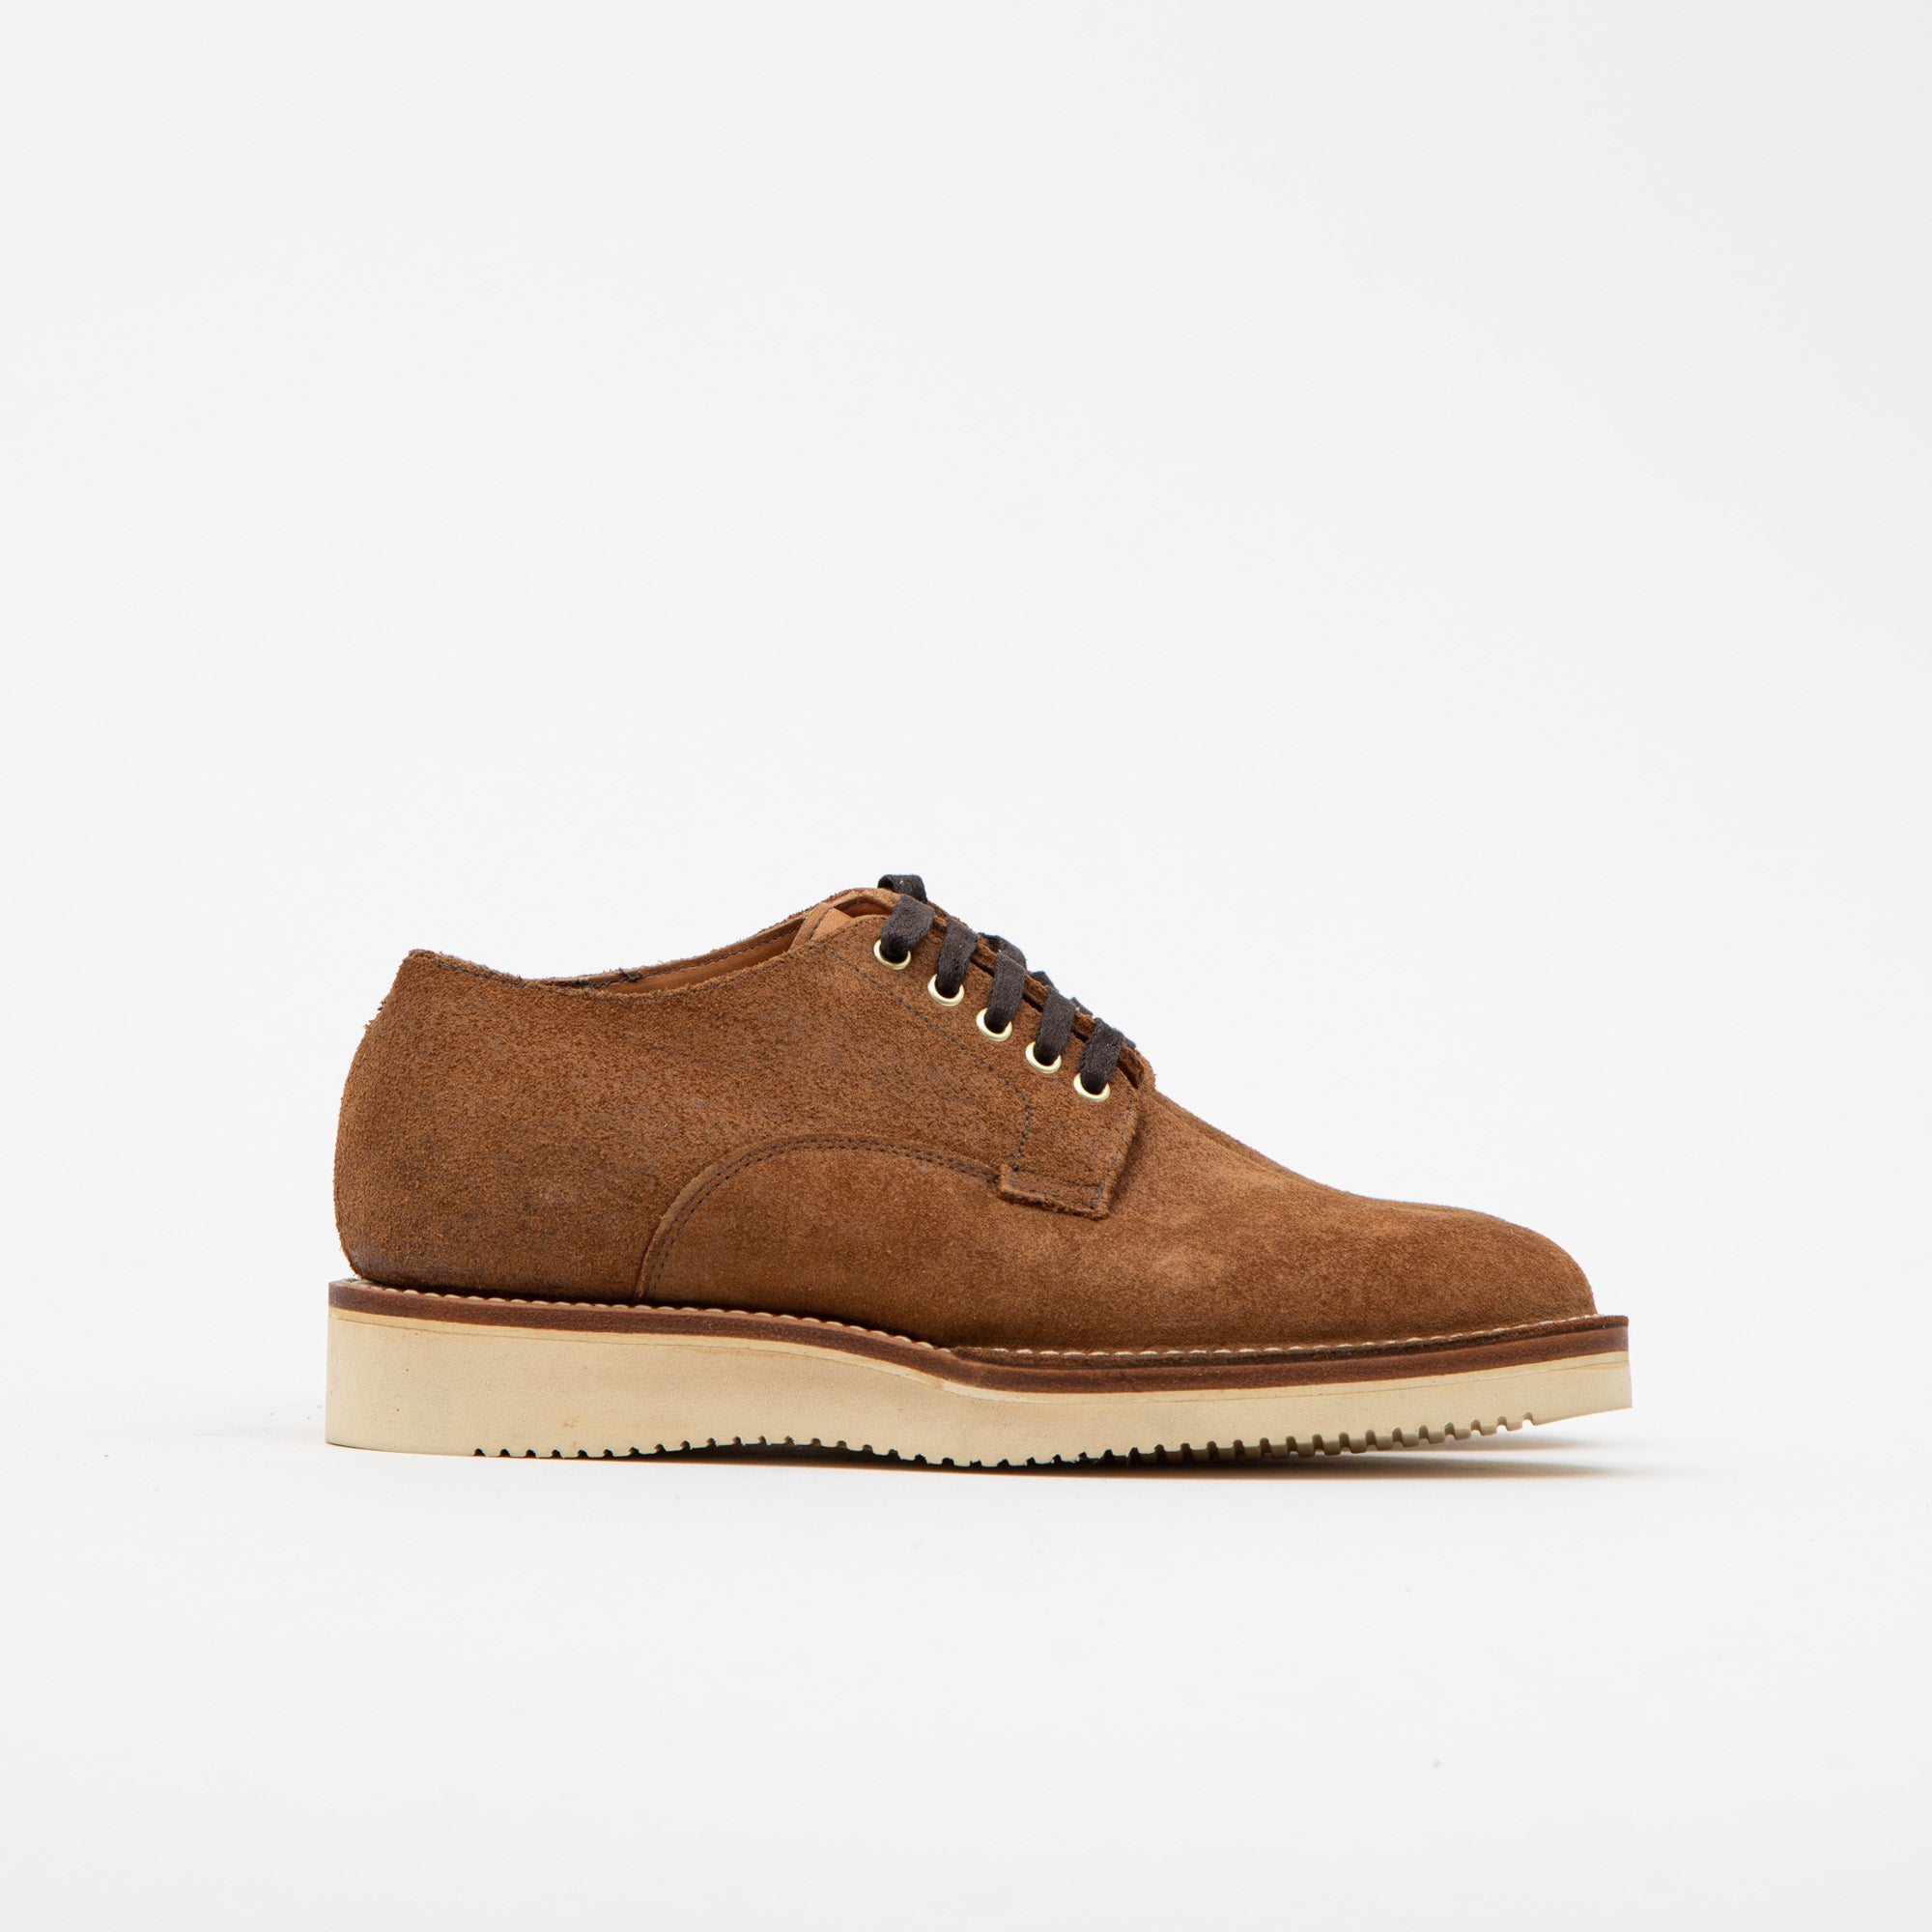 Viberg Boot x Haven 145 Rough-Out Leather Derby